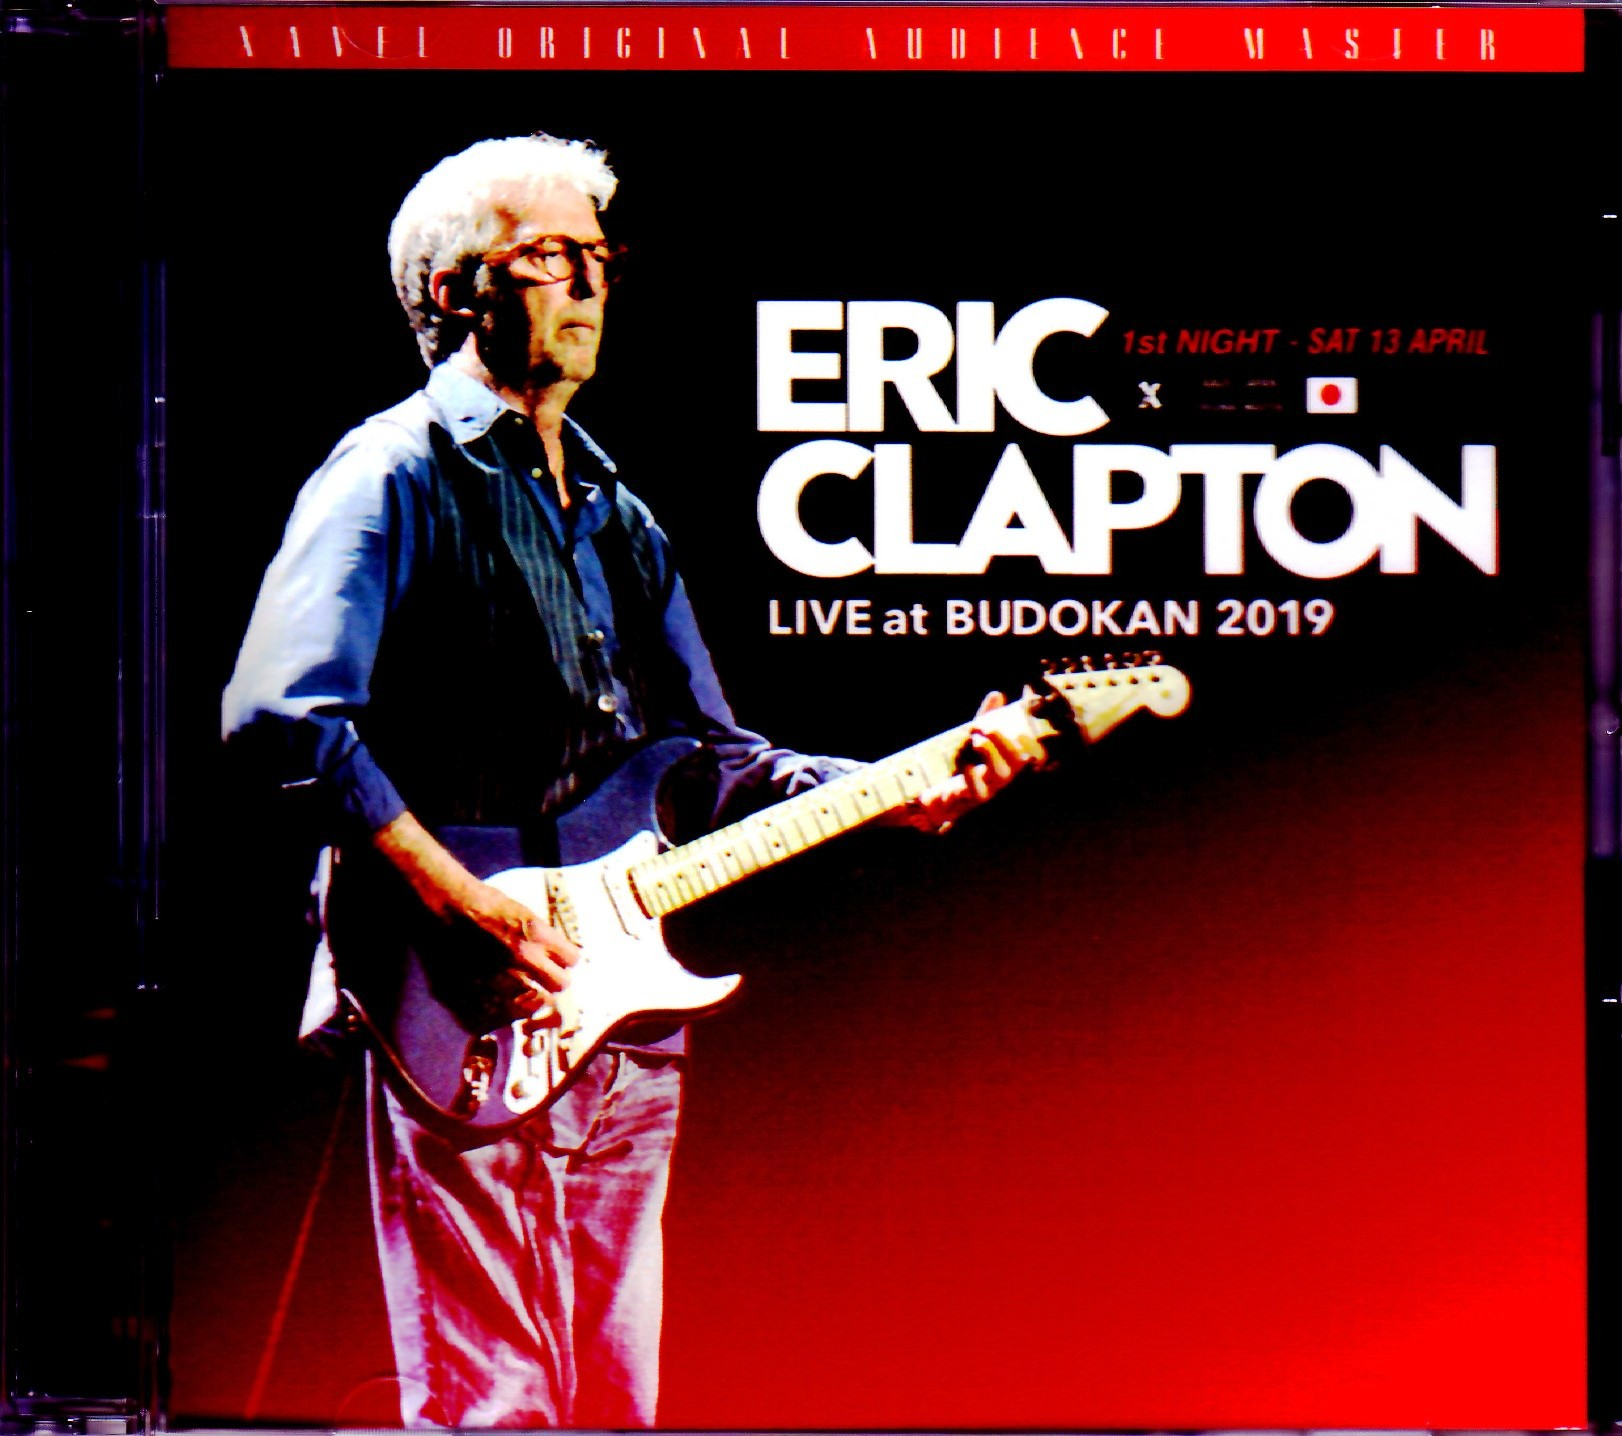 Eric Clapton エリック・クラプトン/Tokyo,Japan 4.13.2019 Omnidirectional Microphone